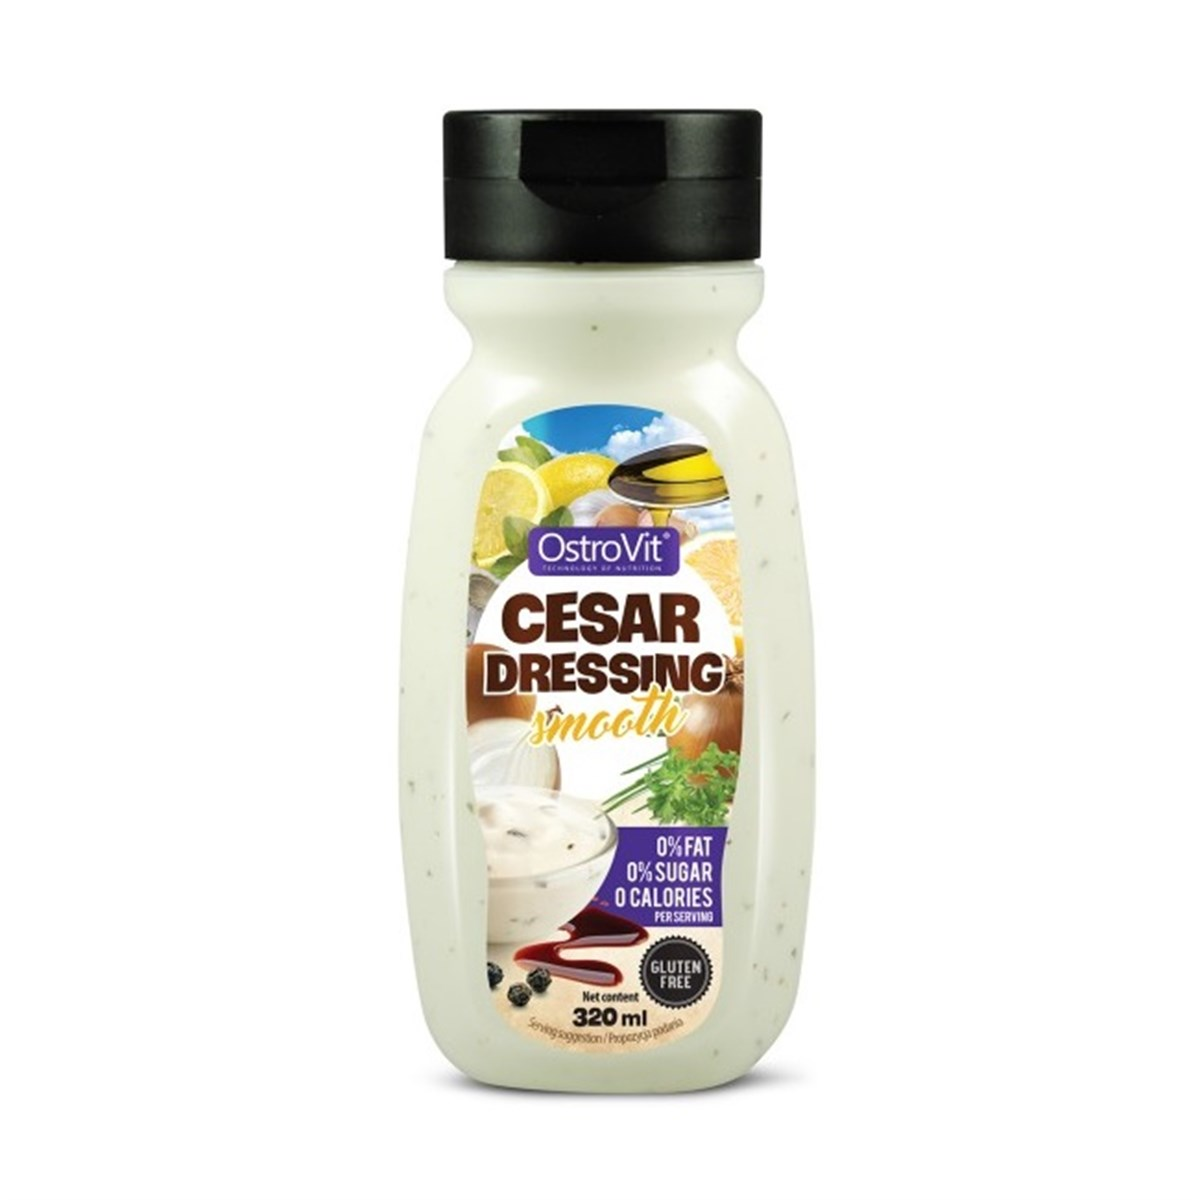 OstroVit Cesar Dressing 320ml